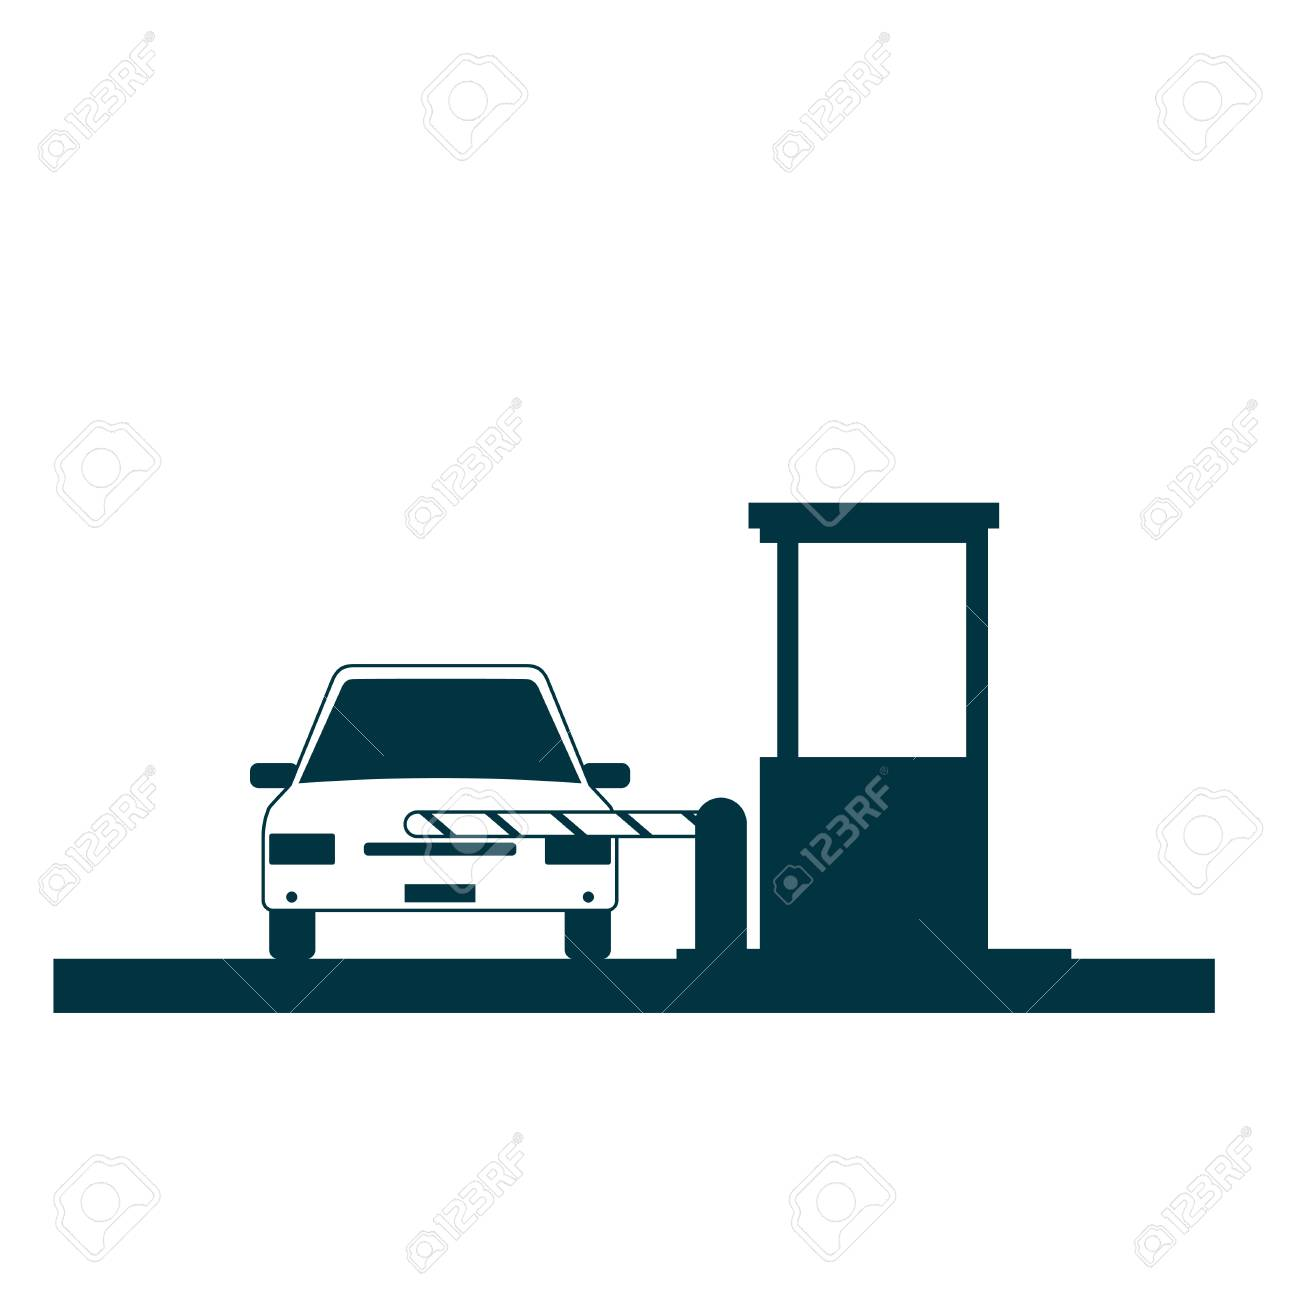 Toll booth icon with car isolated on white - 91449403